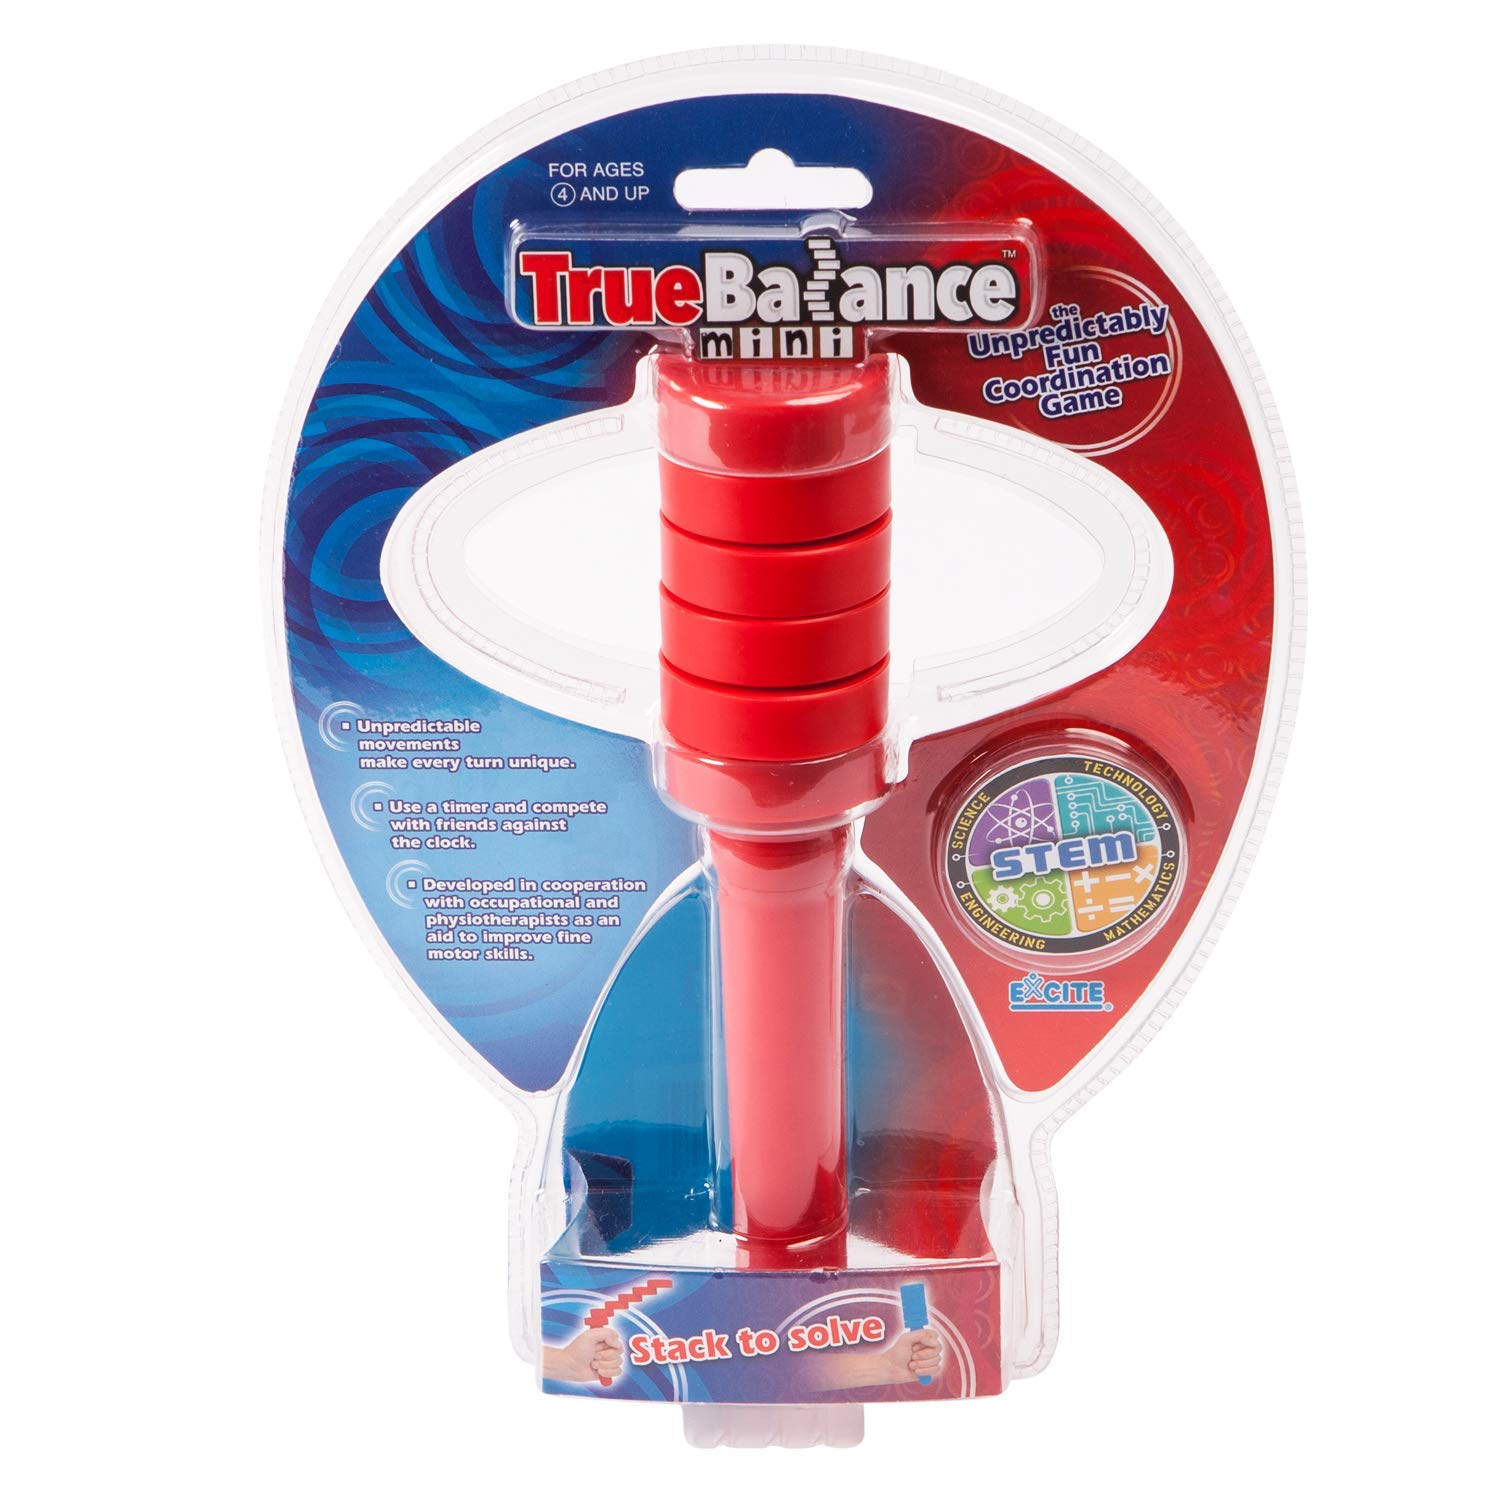 TrueBalance Coordination STEM Toy